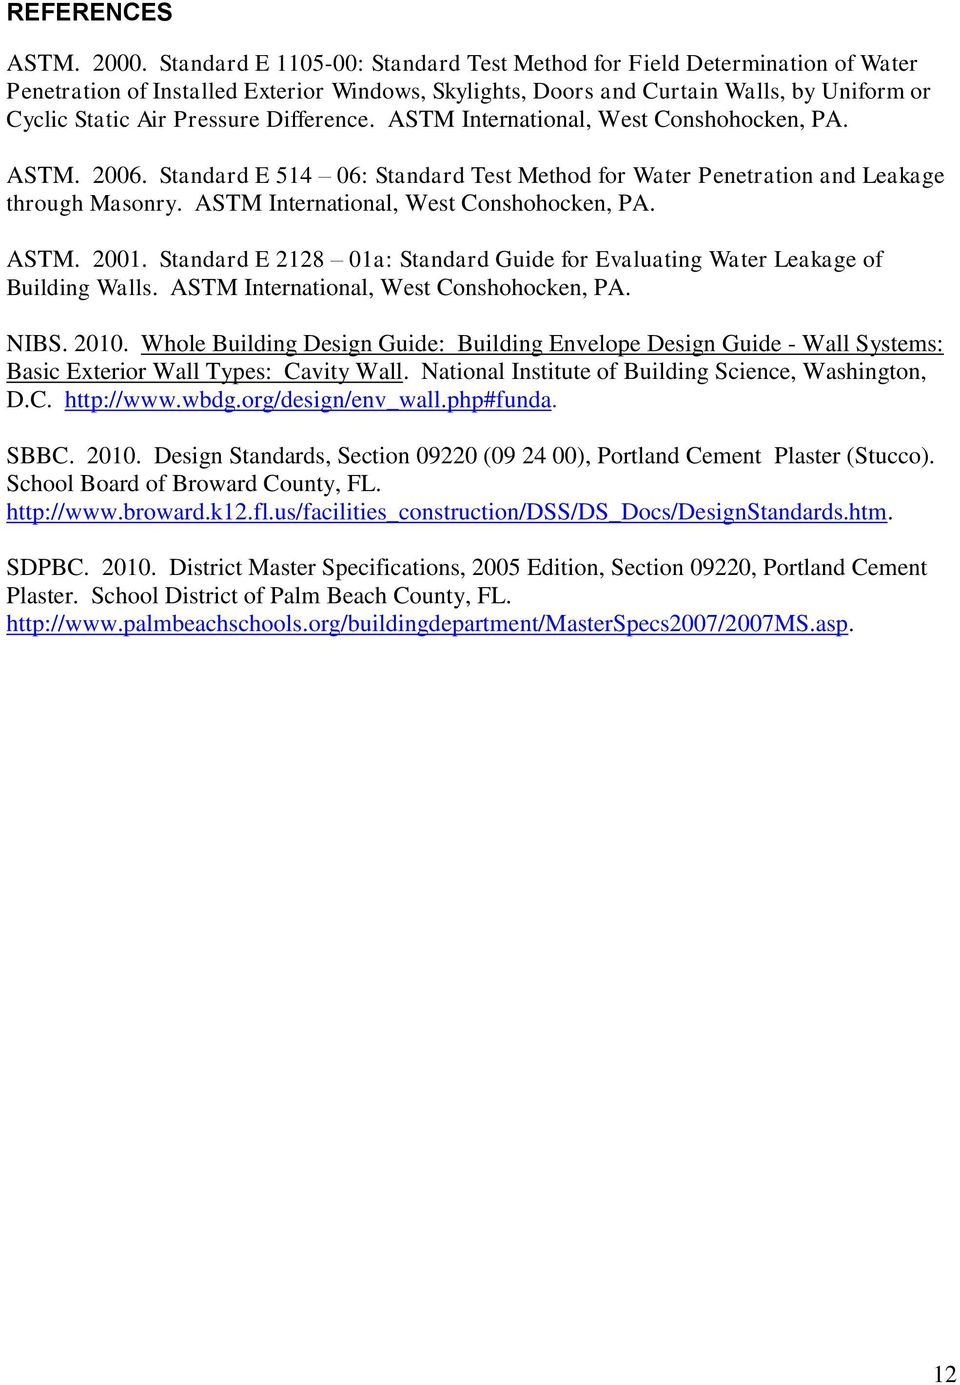 Difference. ASTM International, West Conshohocken, PA. ASTM. 2006. Standard E 514 06: Standard Test Method for Water Penetration and Leakage through Masonry. ASTM International, West Conshohocken, PA. ASTM. 2001.